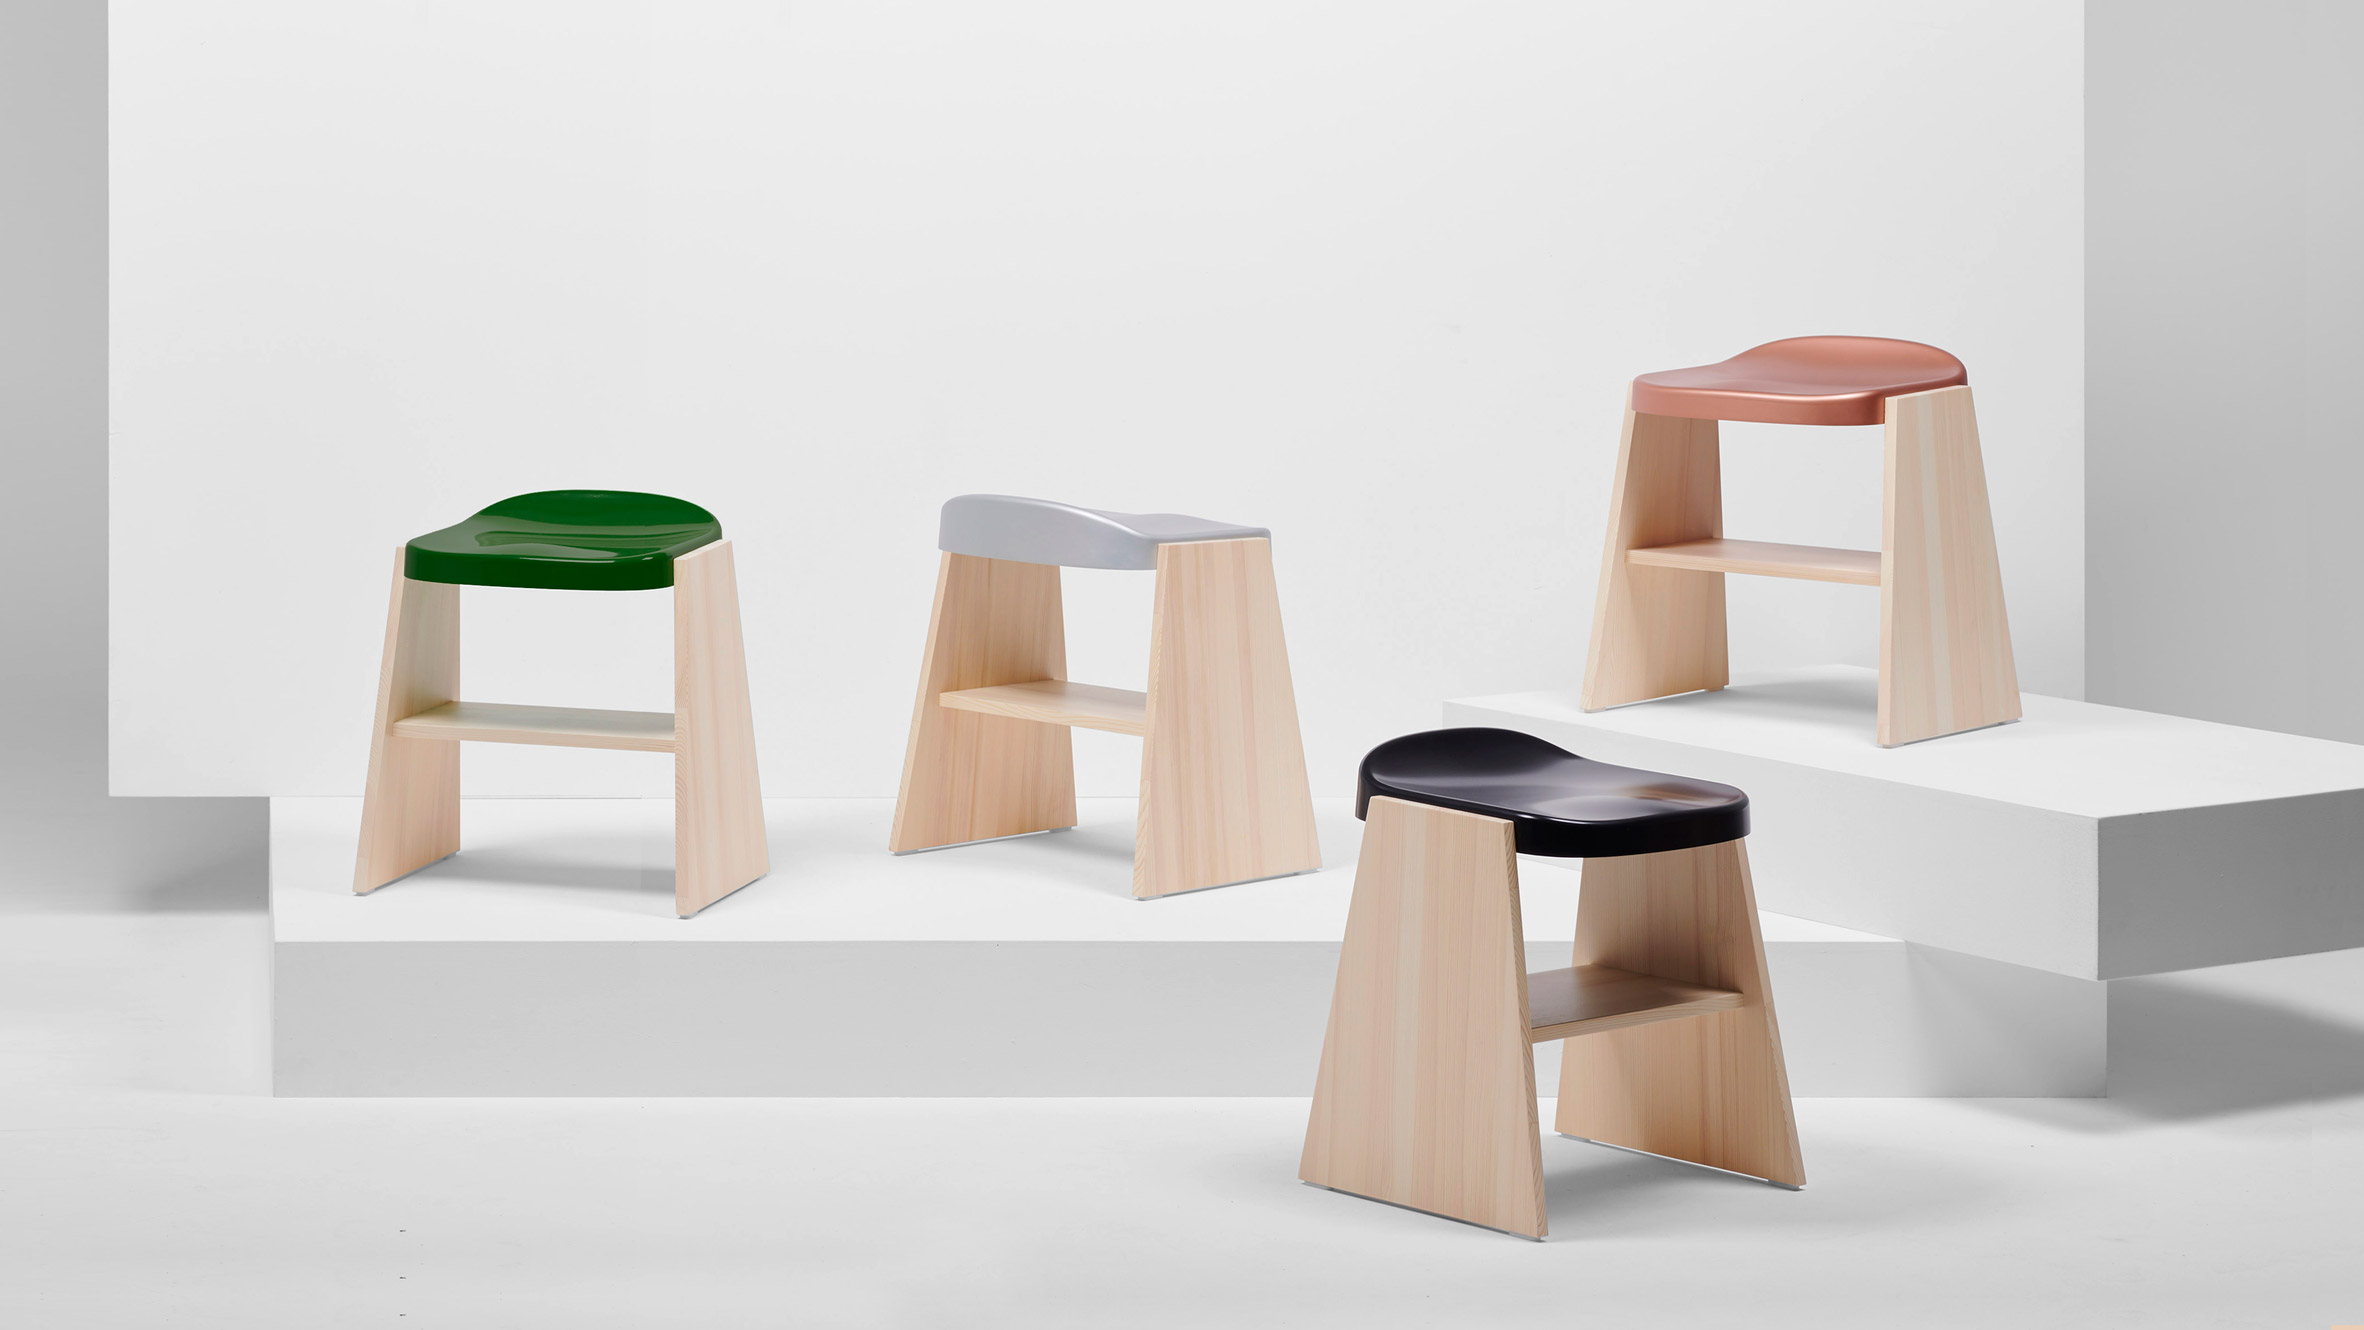 Pleasing Mattiazzi Debuts Four New Seating Designs At Milan Design Week Caraccident5 Cool Chair Designs And Ideas Caraccident5Info